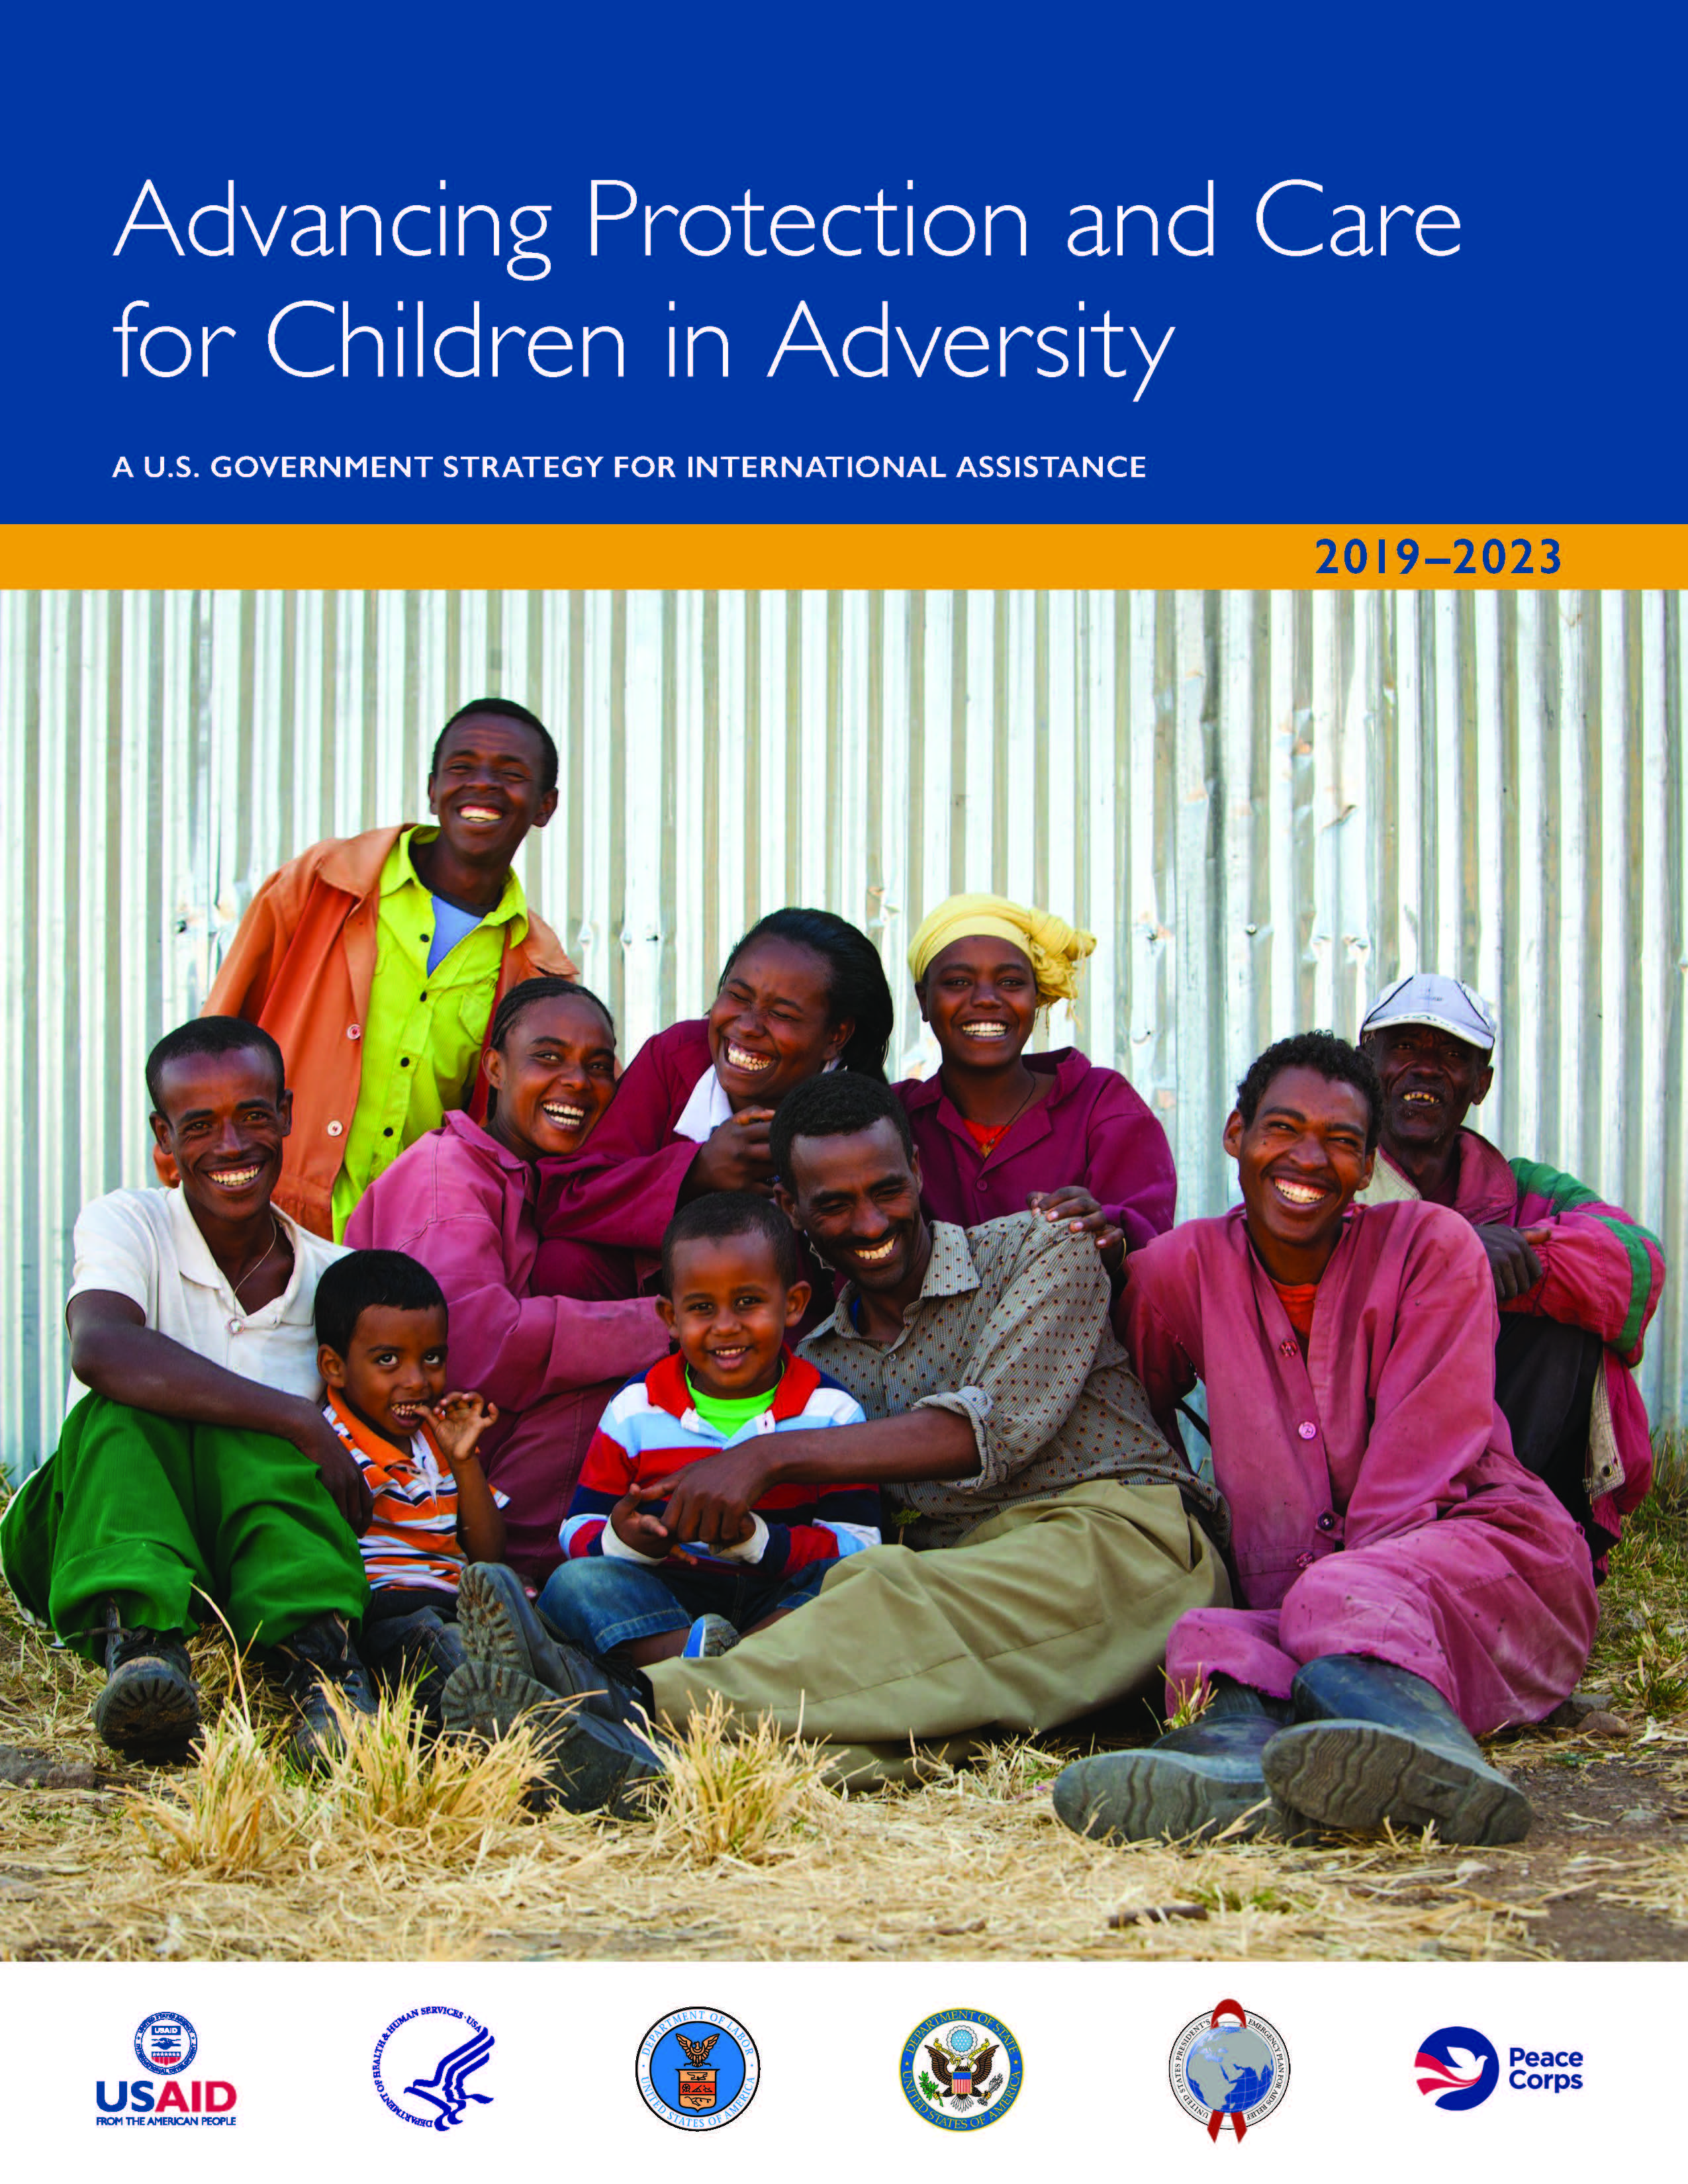 U.S. Government strategy for international assistance to children in adversity